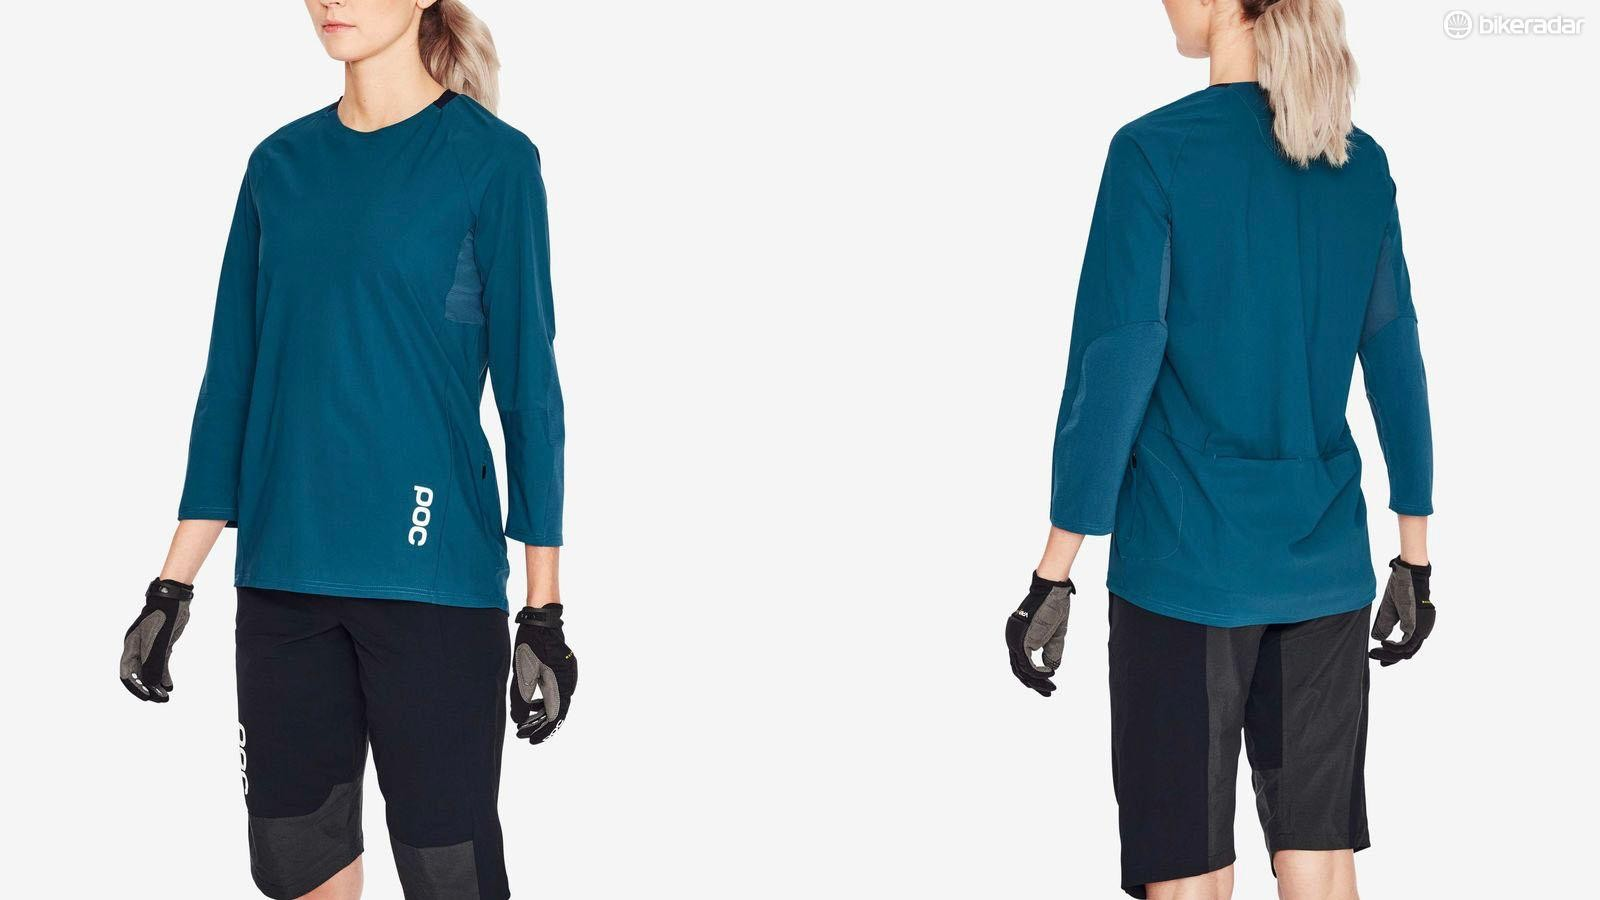 The Resistance women range received design and Innovation awards for its clever use of fabrics and integrated pockets